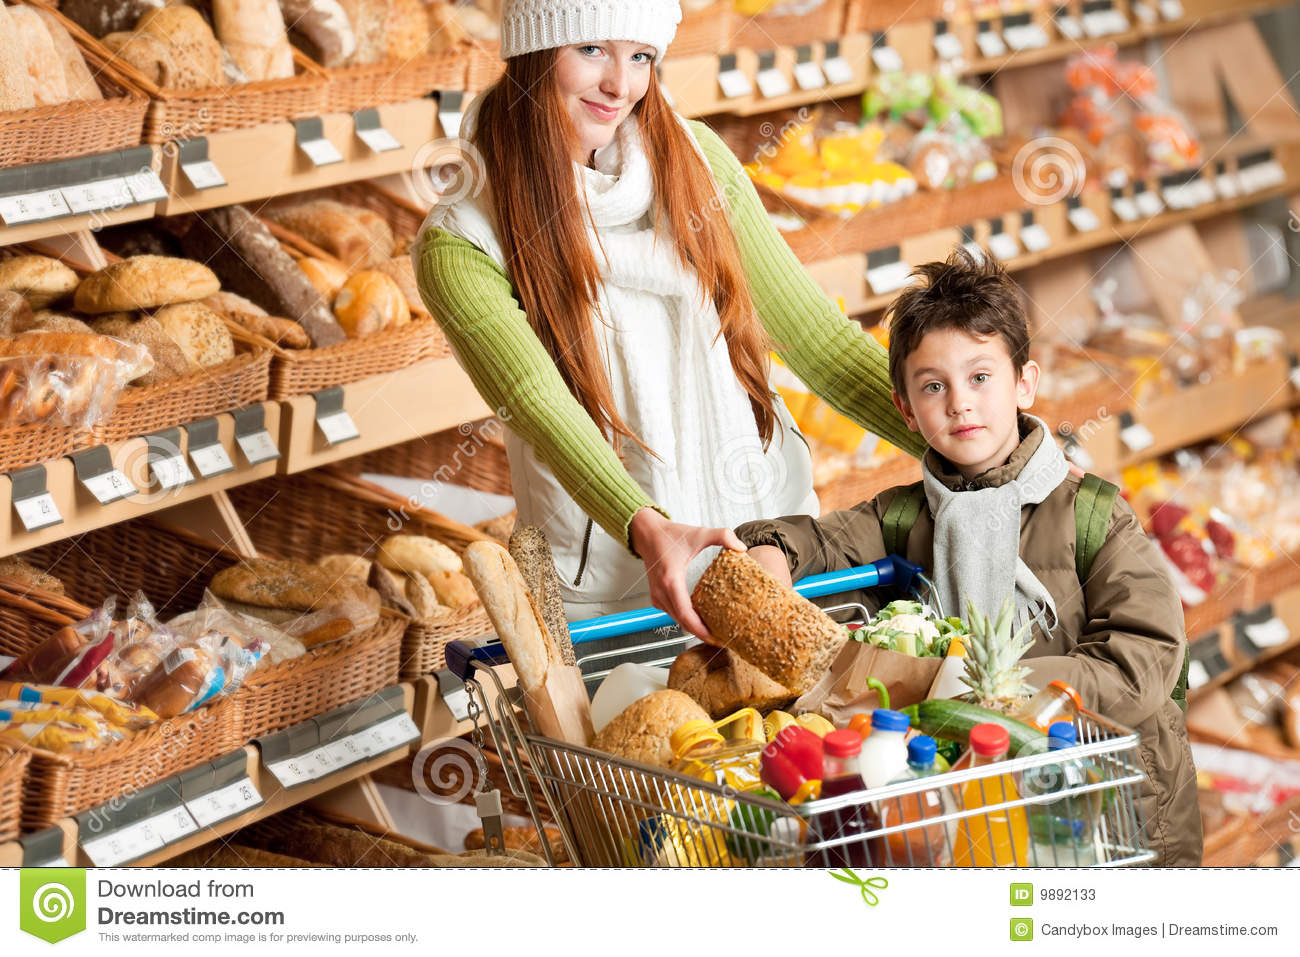 Warehouse grocery shopping online